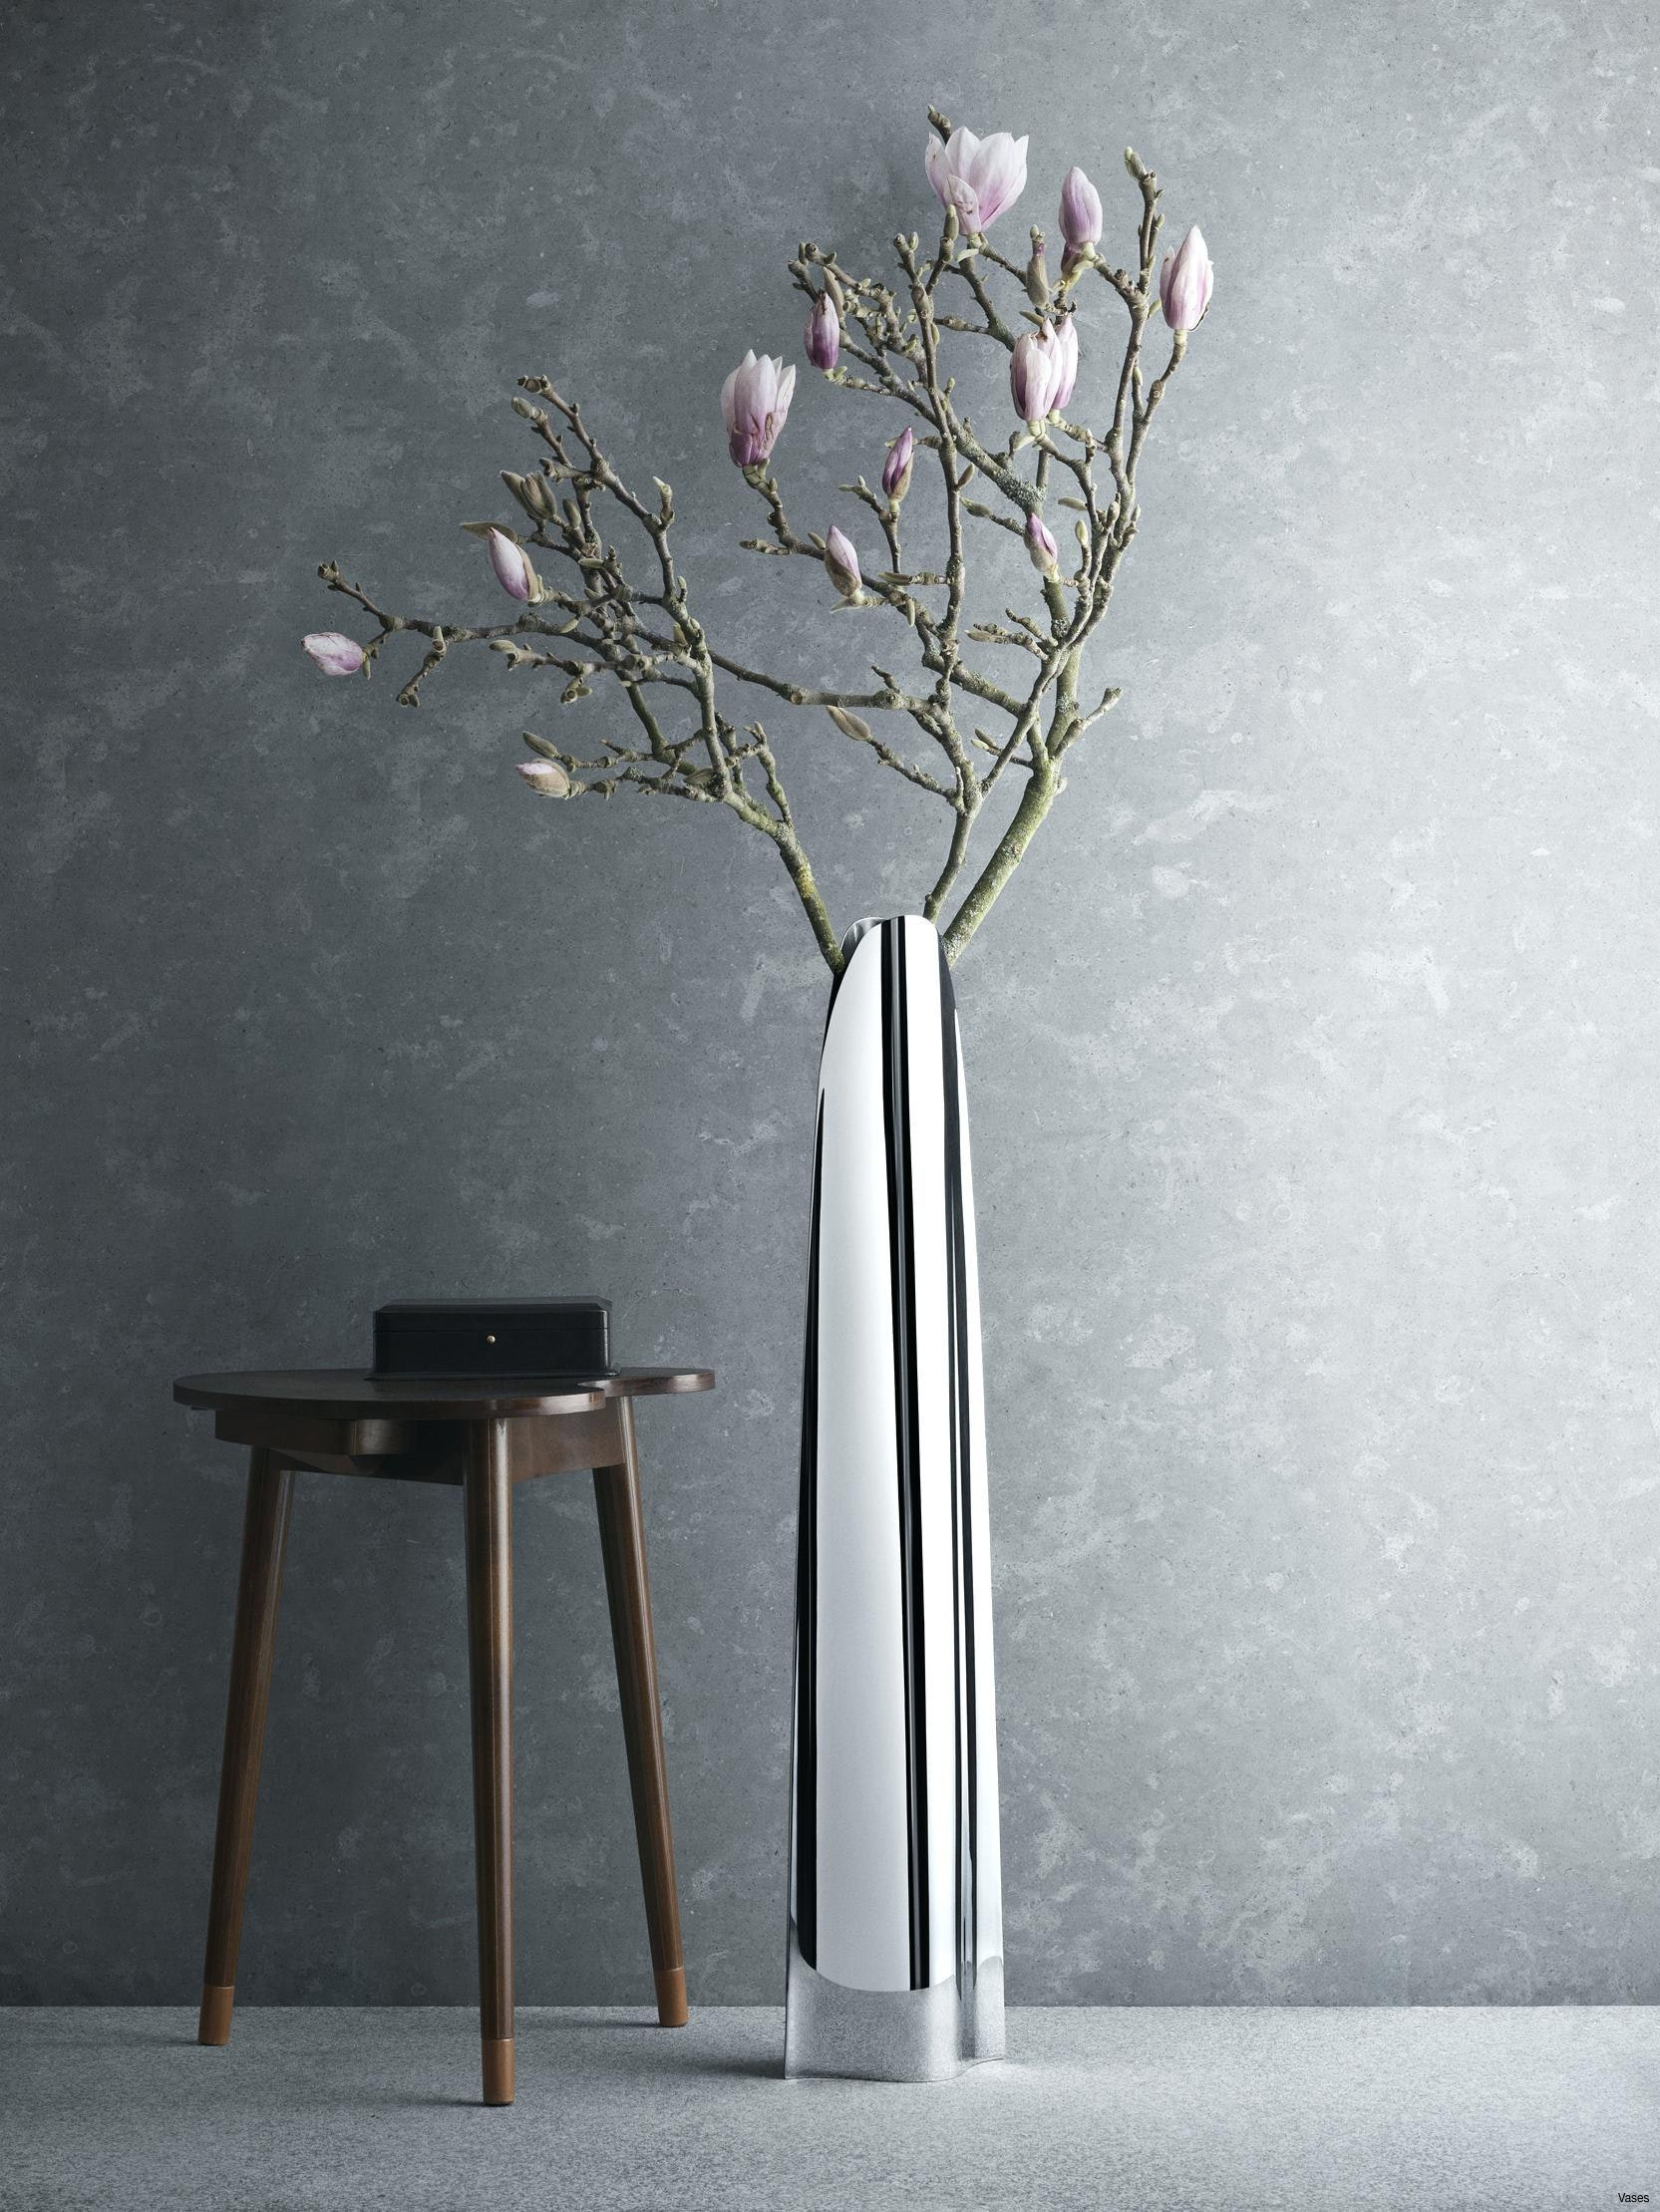 decorative floor vase fillers of tall floor vase fillers gallery decorating ideas for tall vases regarding decorating ideas for tall vases fresh floor vase filler ideas